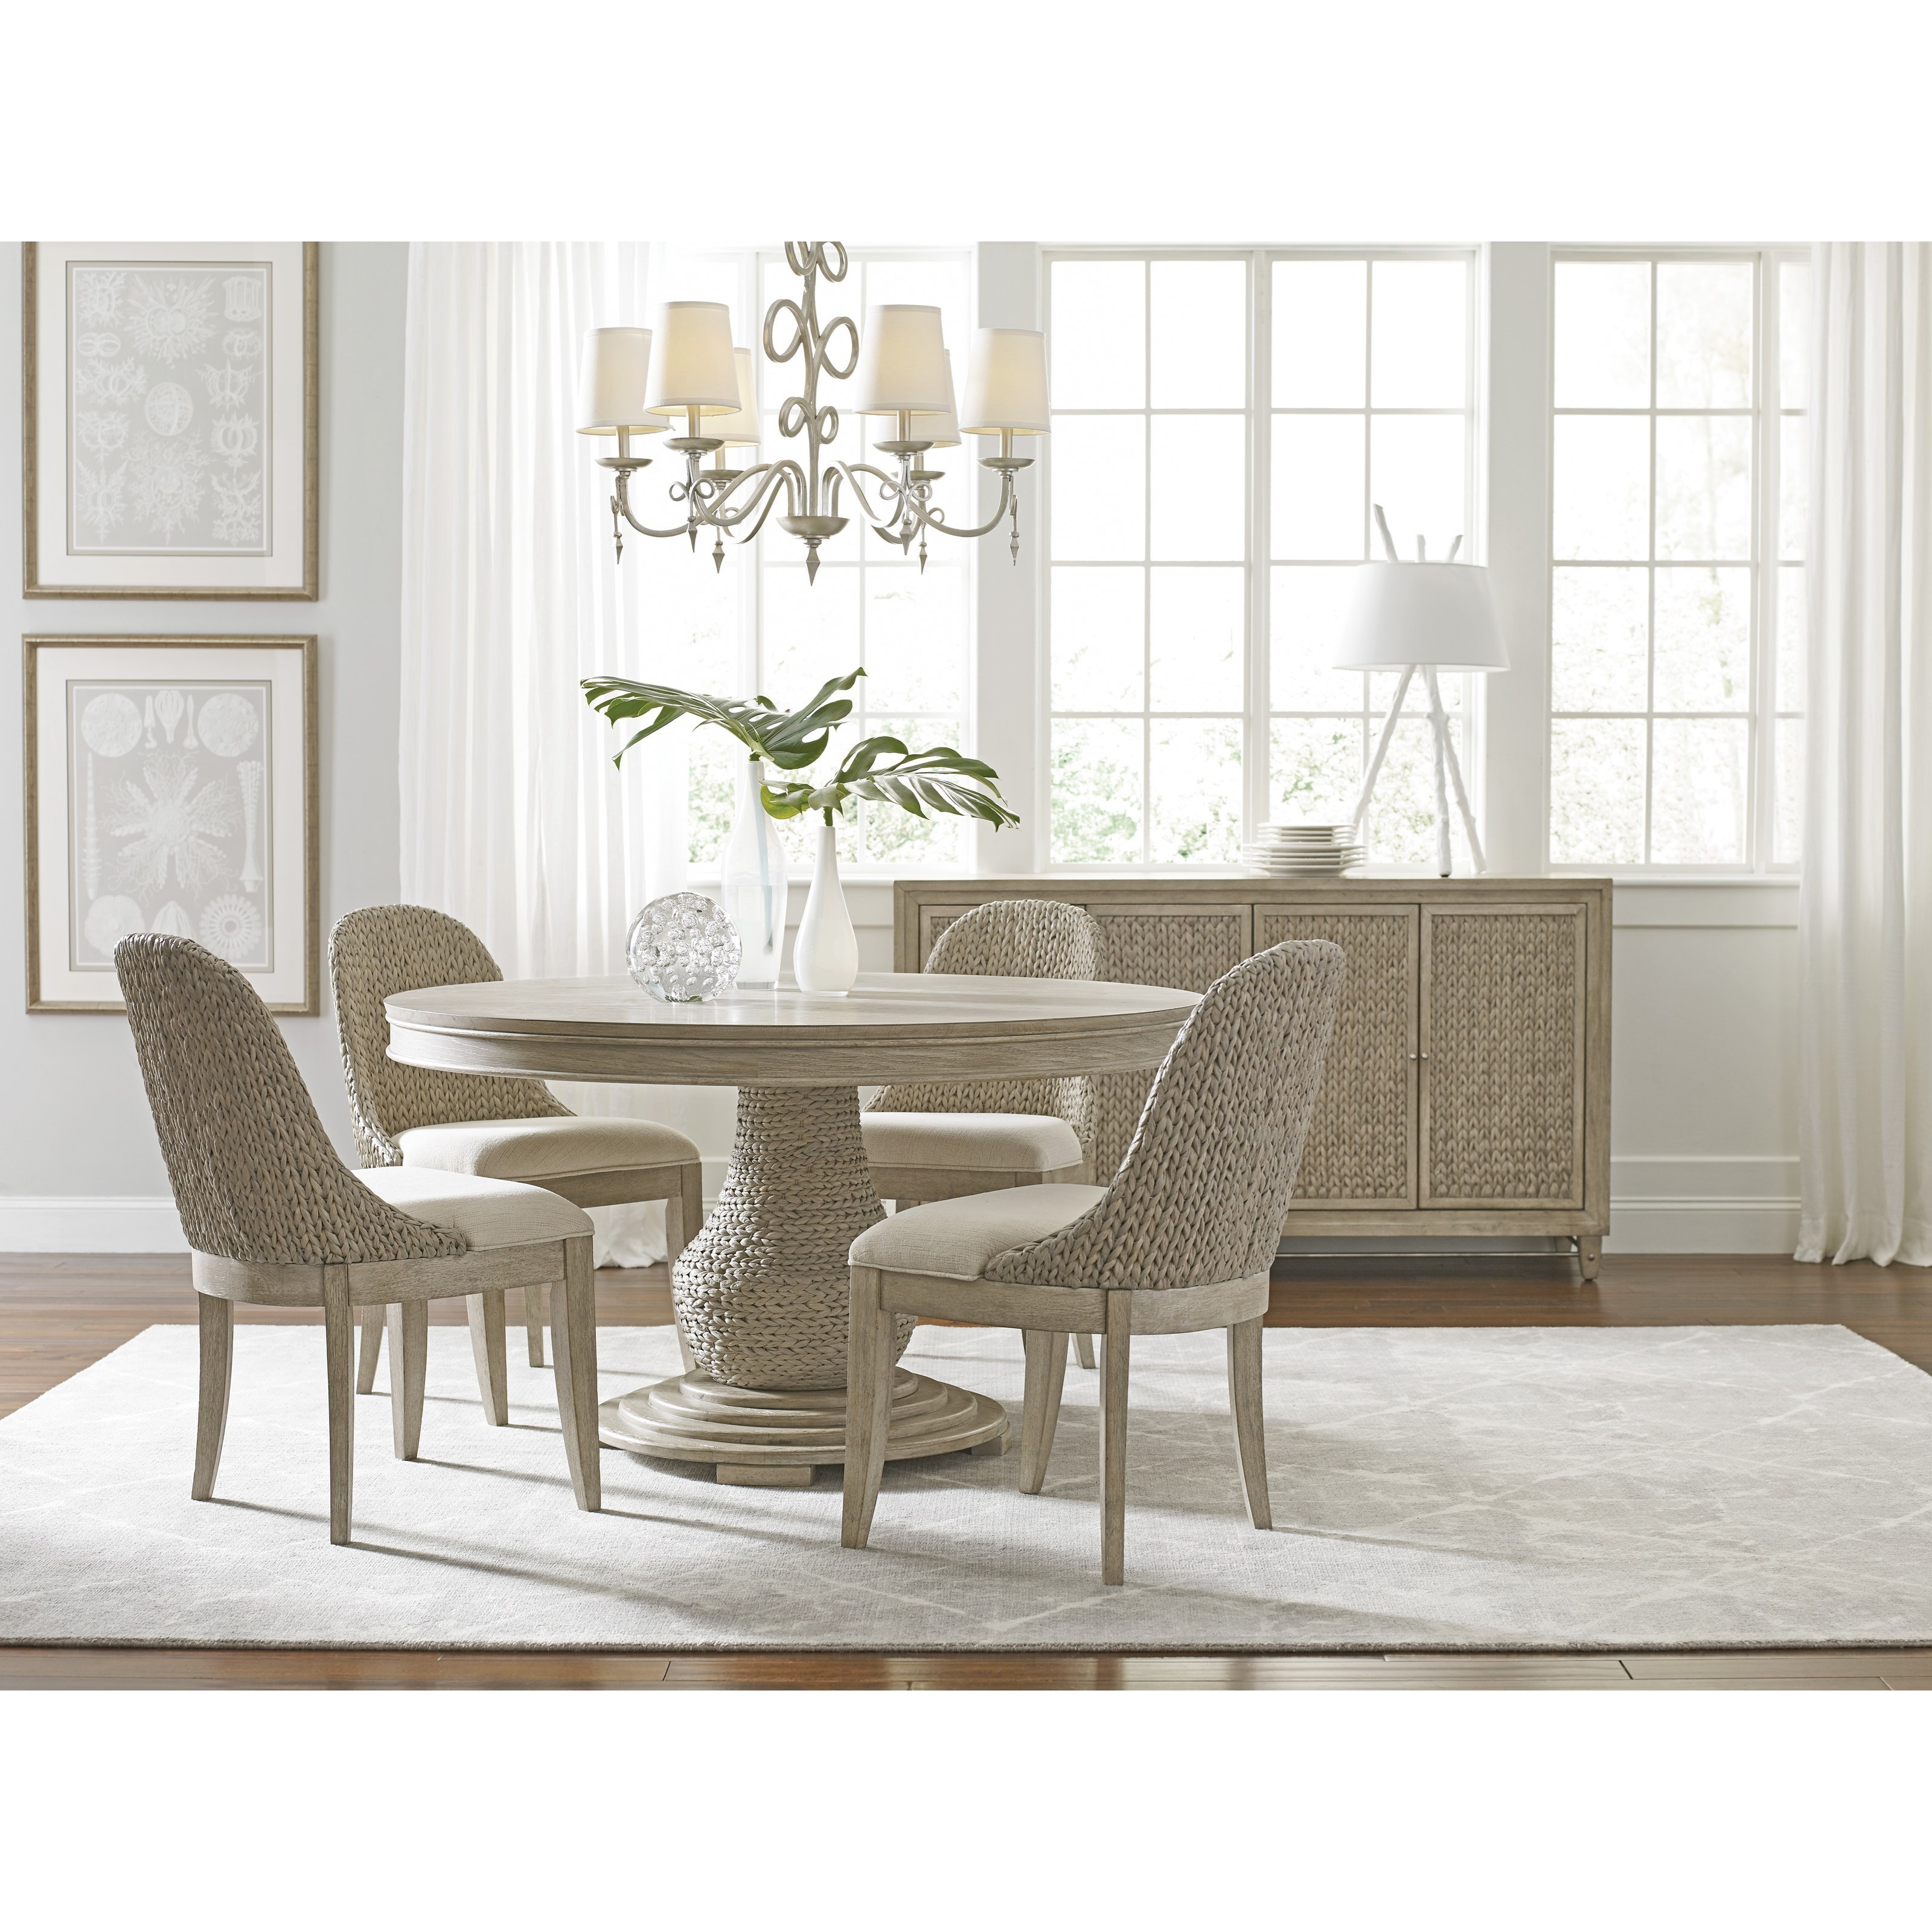 American Drew Vista Relaxed Vintage Boca Woven Dining